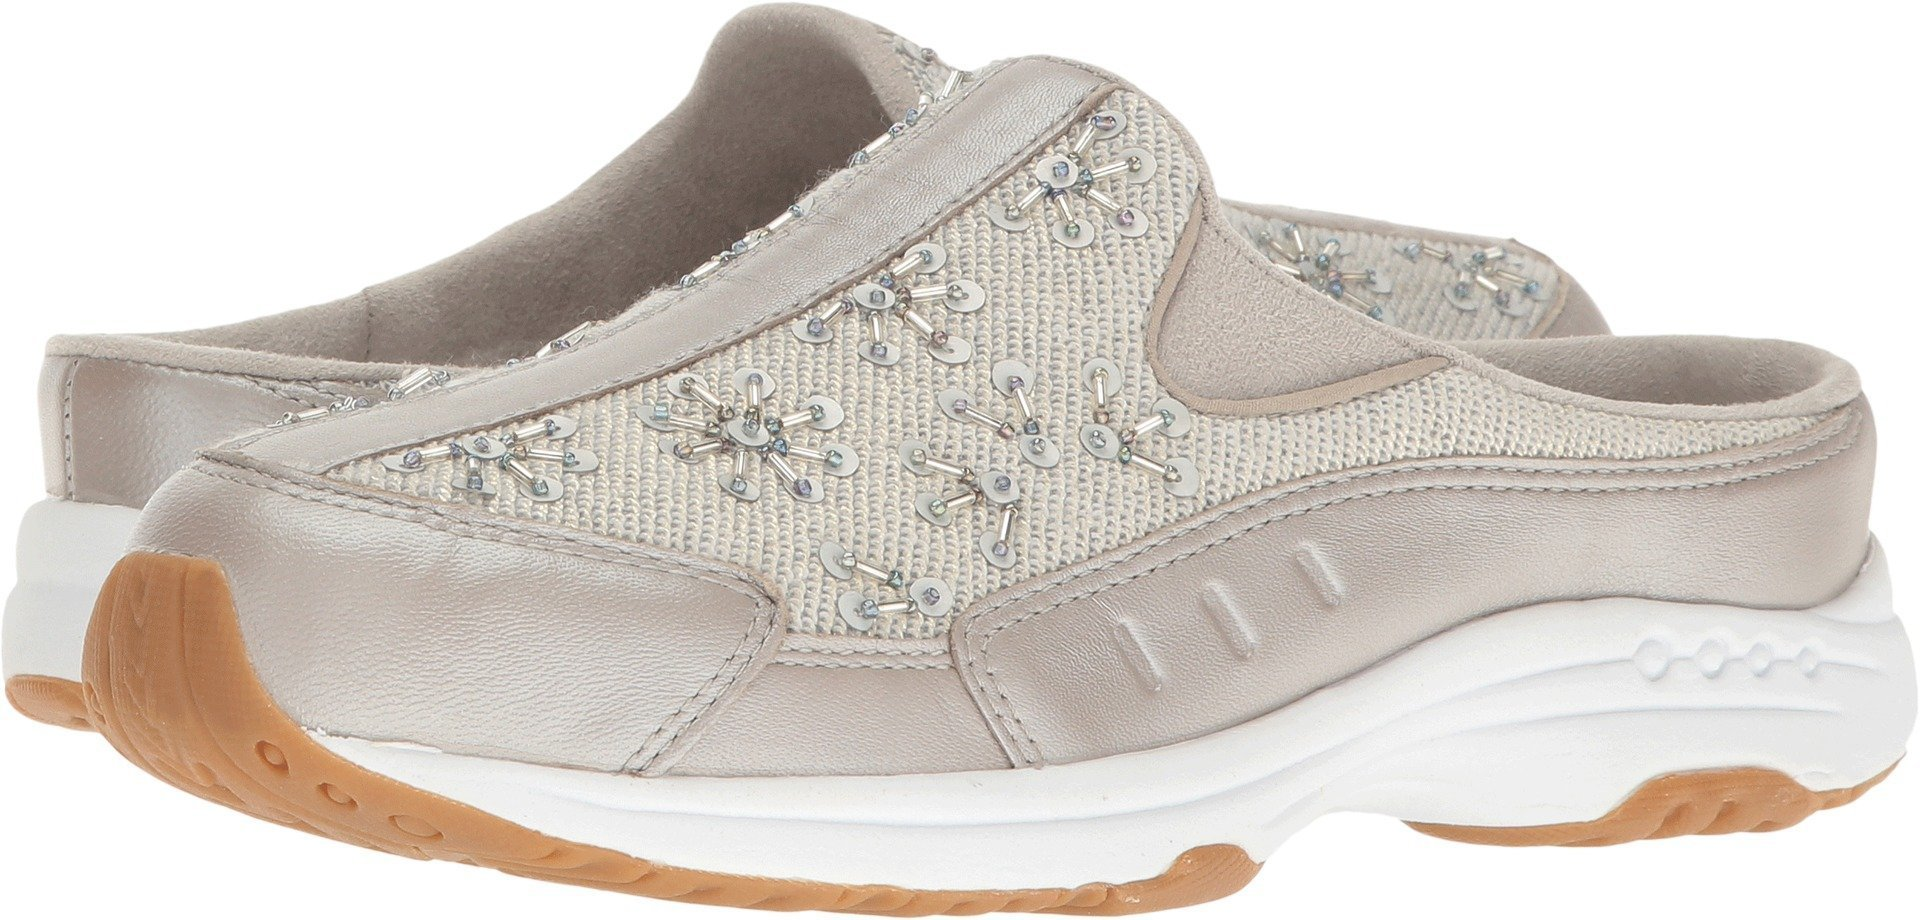 Easy Spirit Women's Travel Jewel Silver/Light Gold Leather Shoe